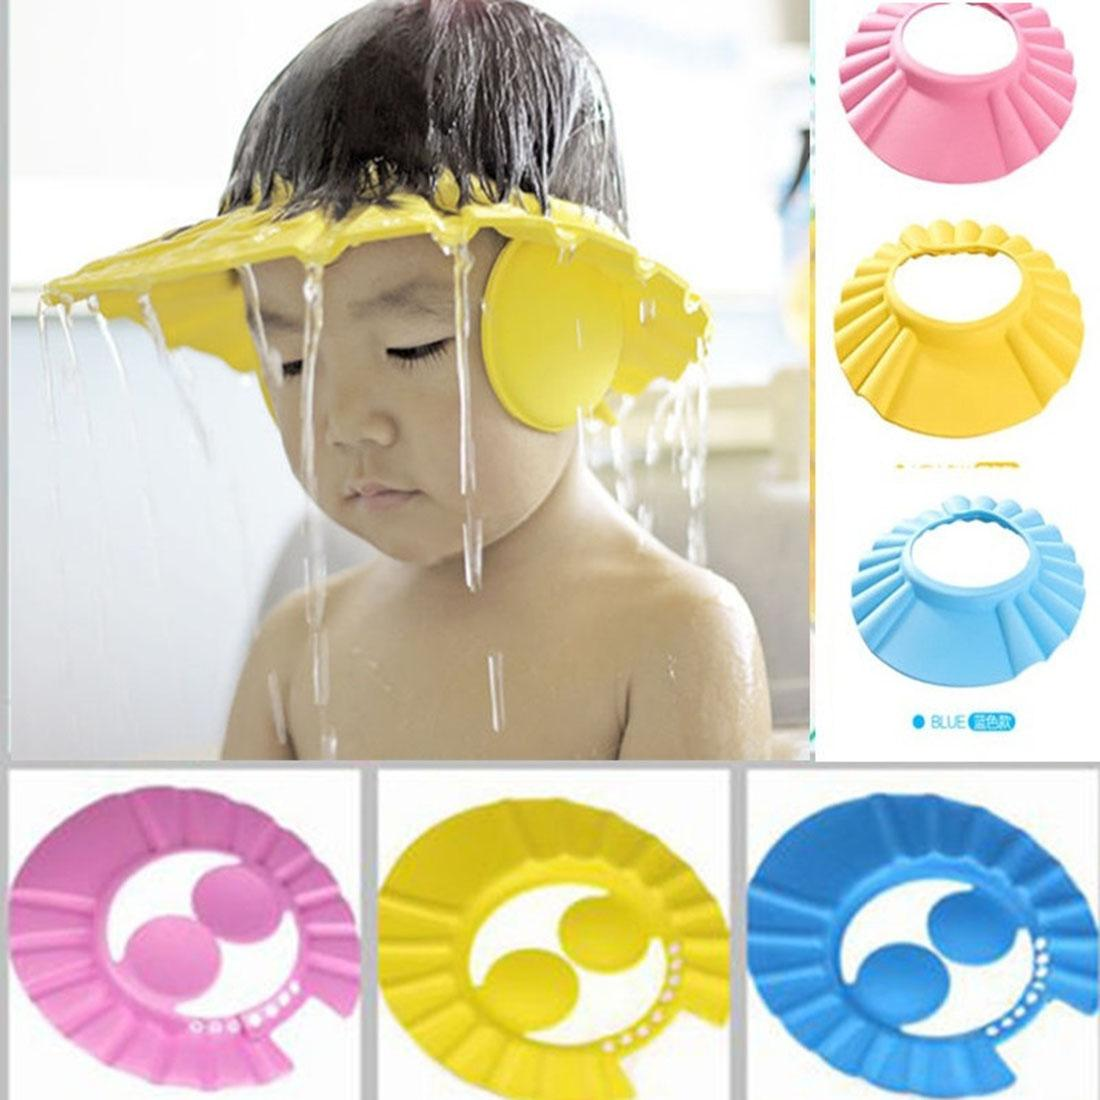 Cartoon Baby Wash Hair Shield Cap Shampoo Bath Shower Hat Protector Kid Children